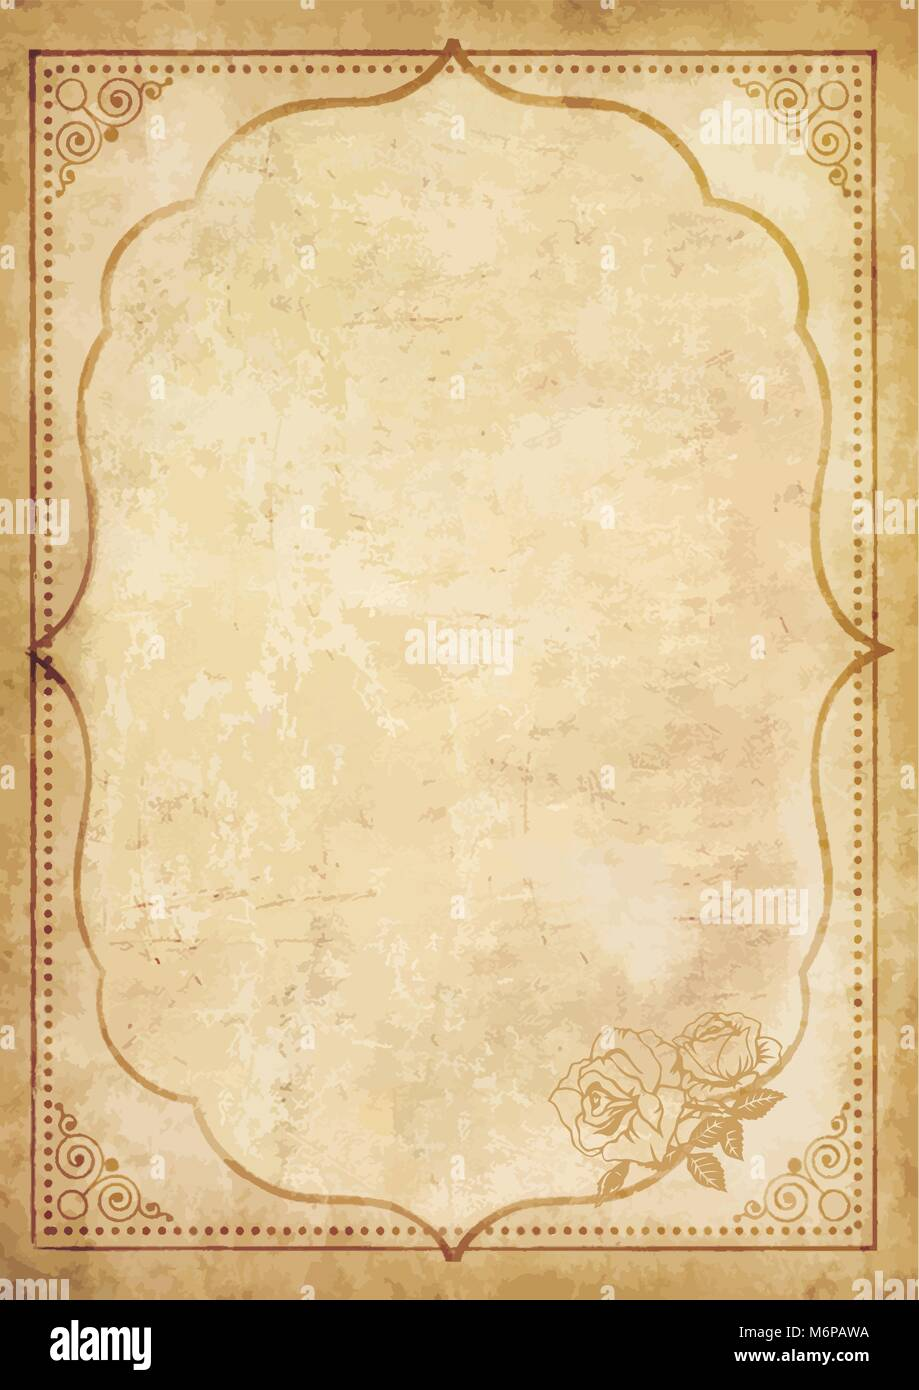 Old grungy vintage paper blank with curly oriental frame ornament and lovely rose flower in the corner. Worn template - Stock Image